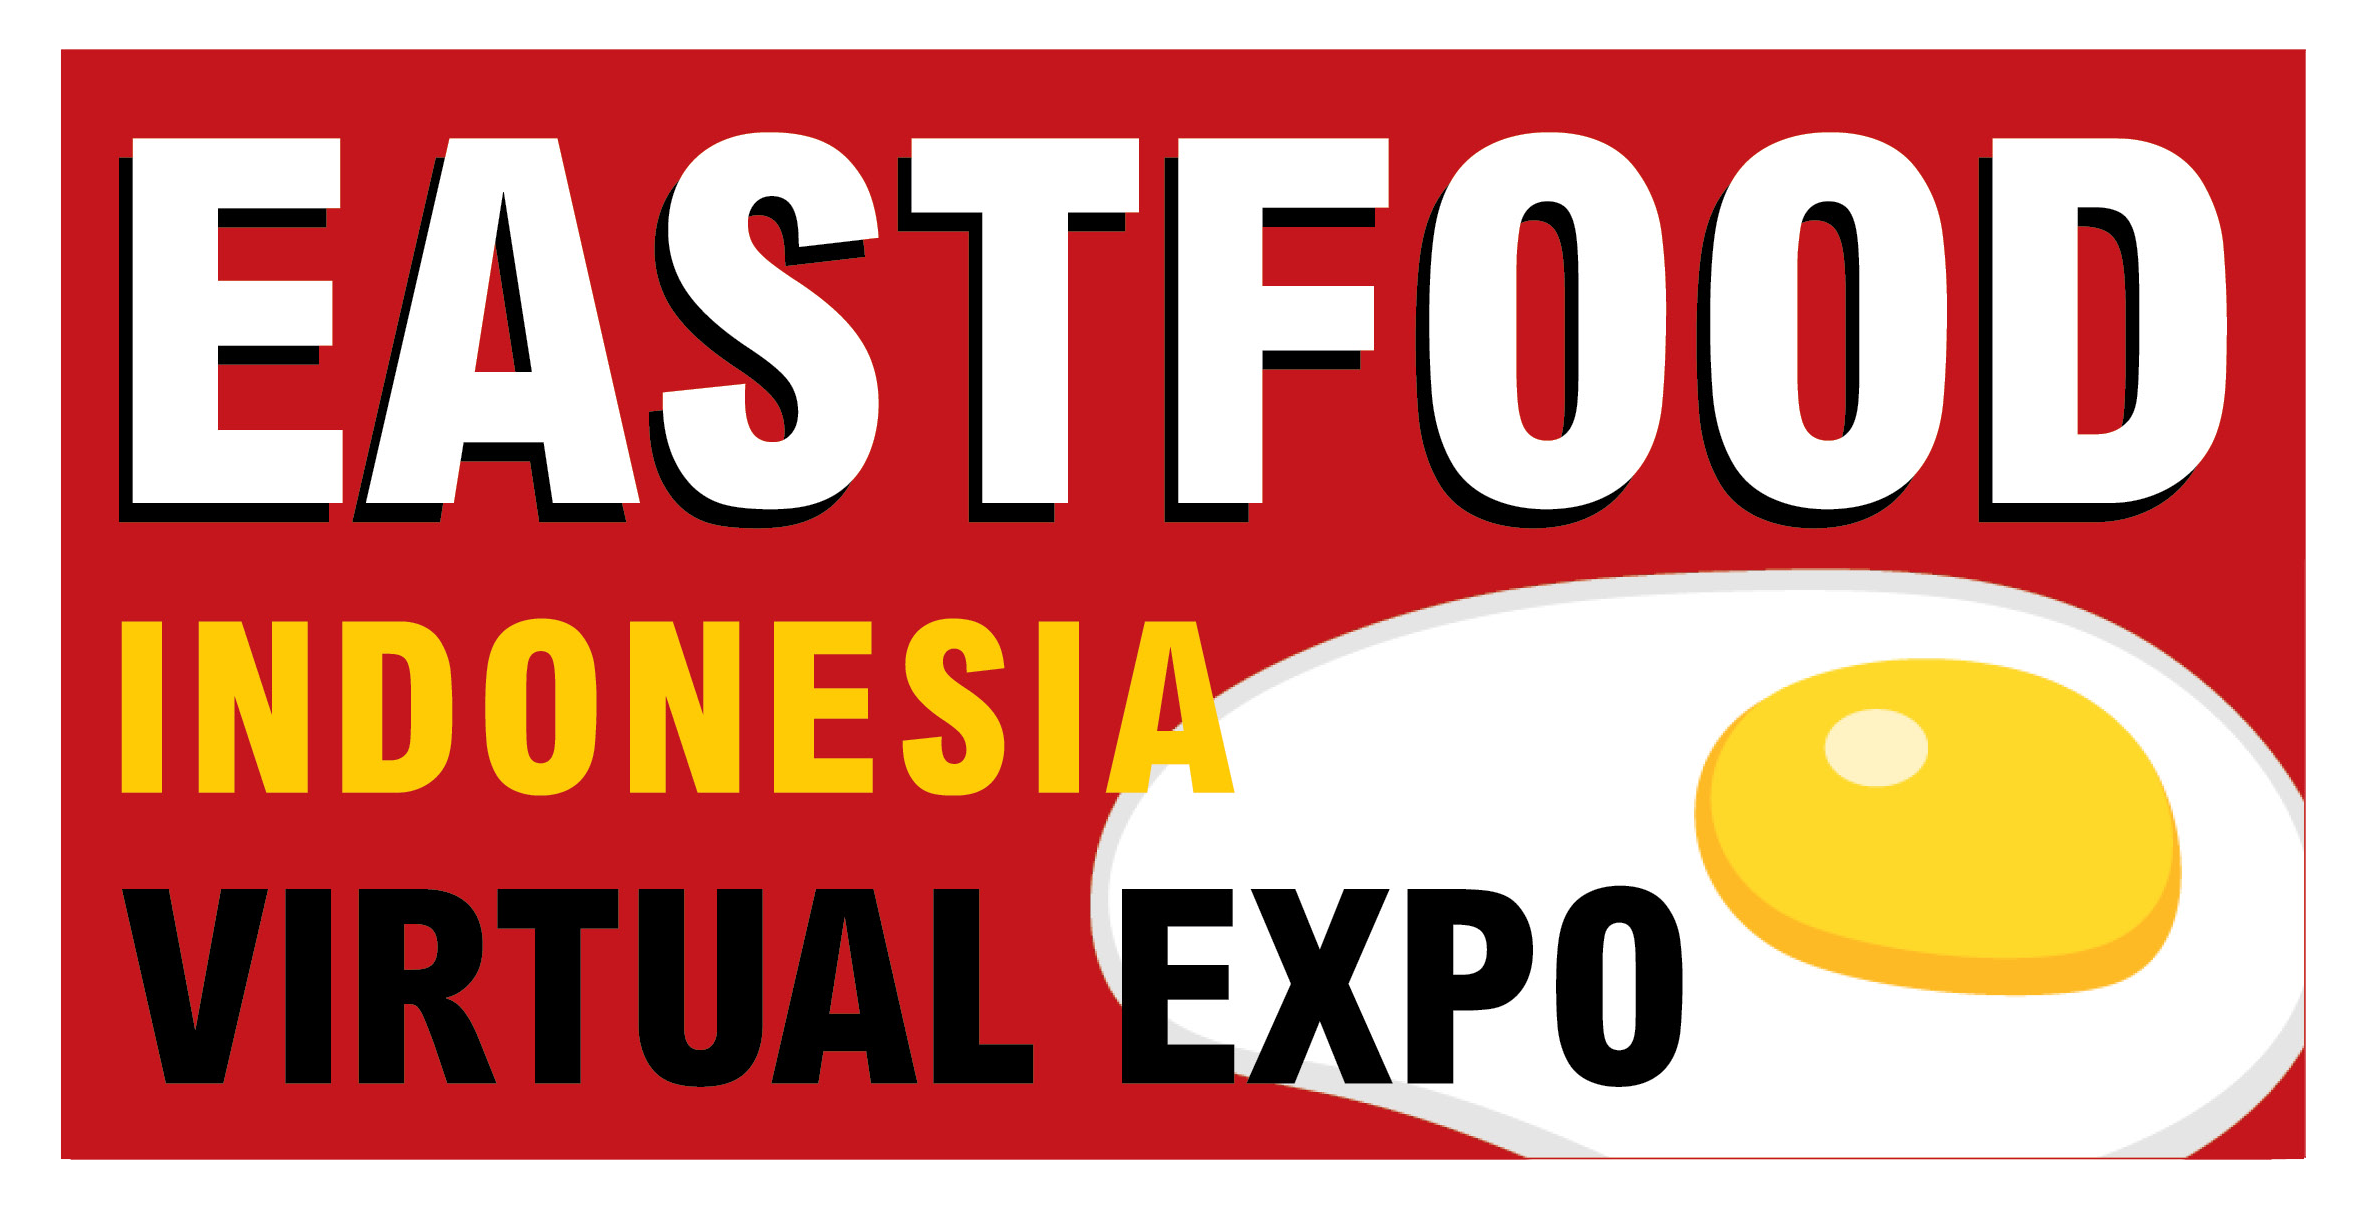 VIRTUAL EAST FOOD INDONESIA EXPO 2020